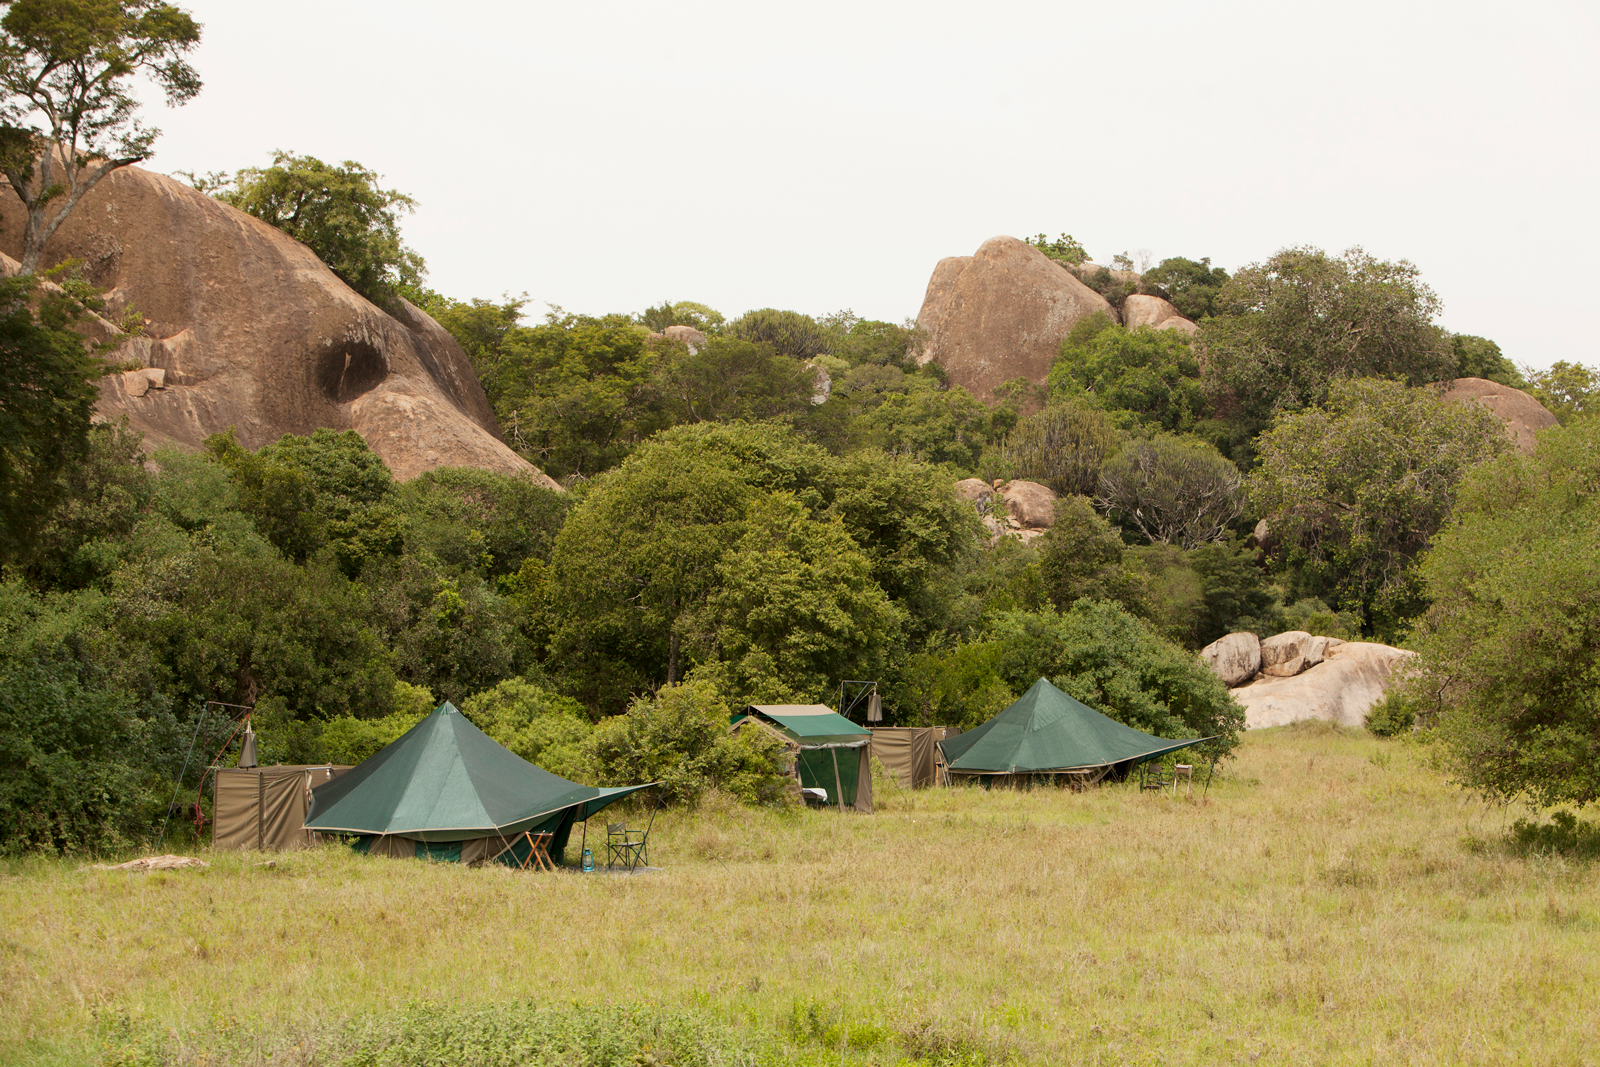 Wayo camp sites are off the beaten track and often secreted away in rocky areas or under riverine trees